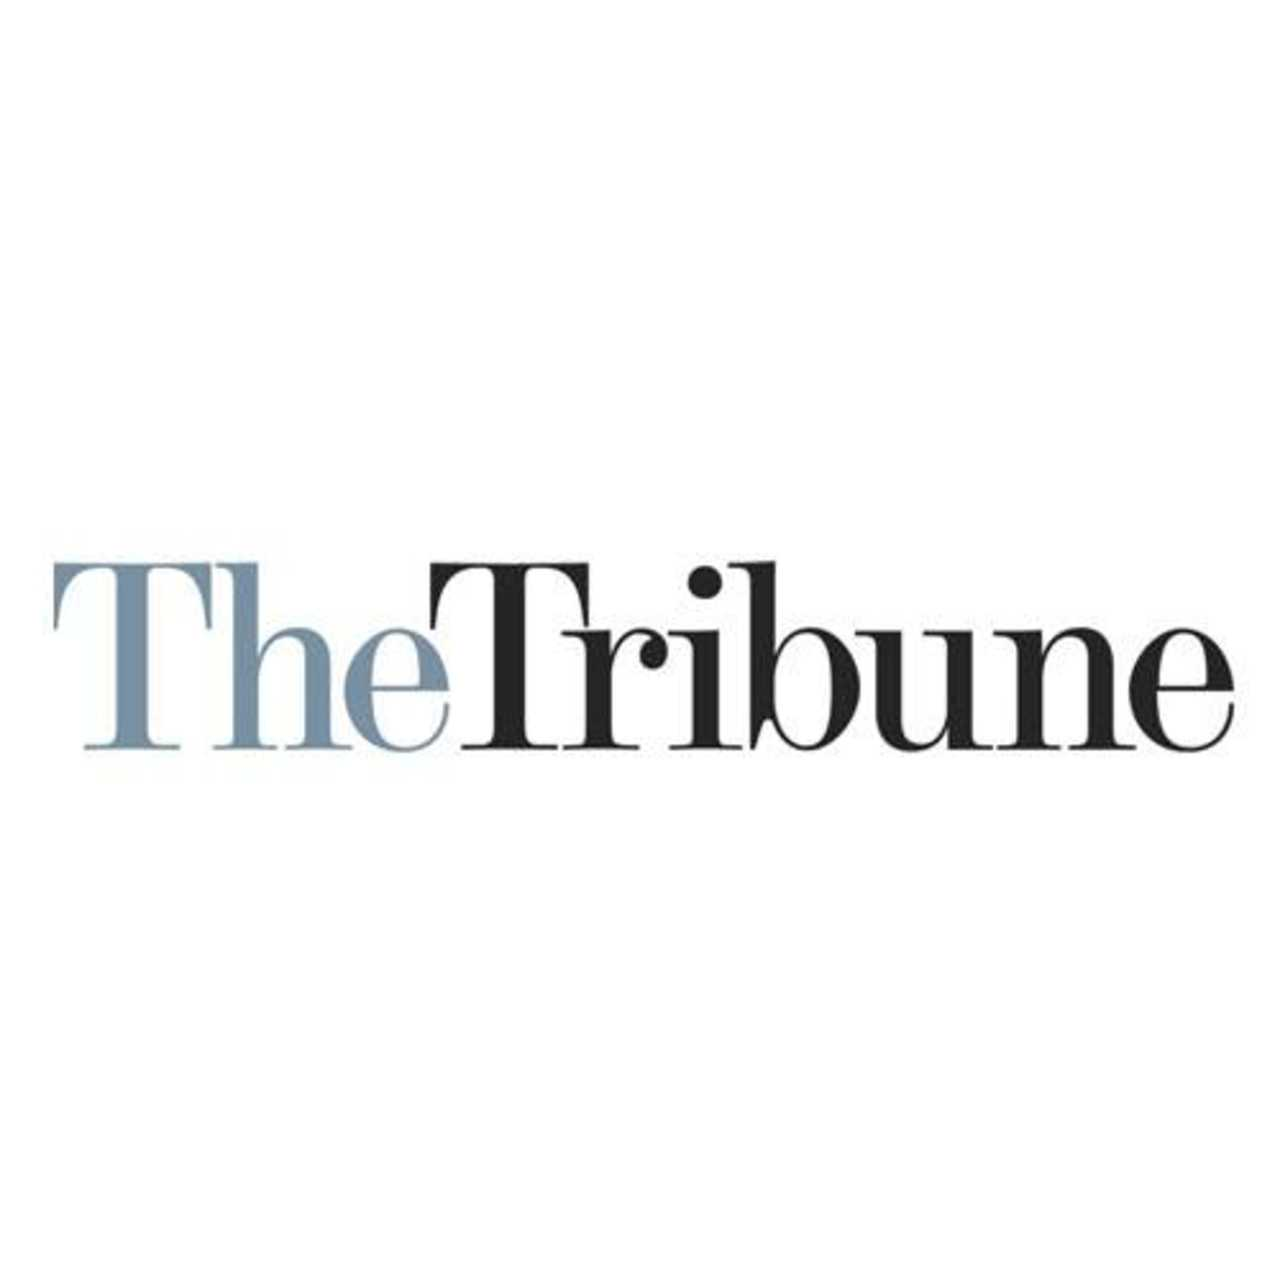 The Greeley Tribune - Communication - Newspapers and Magazines in Greeley CO